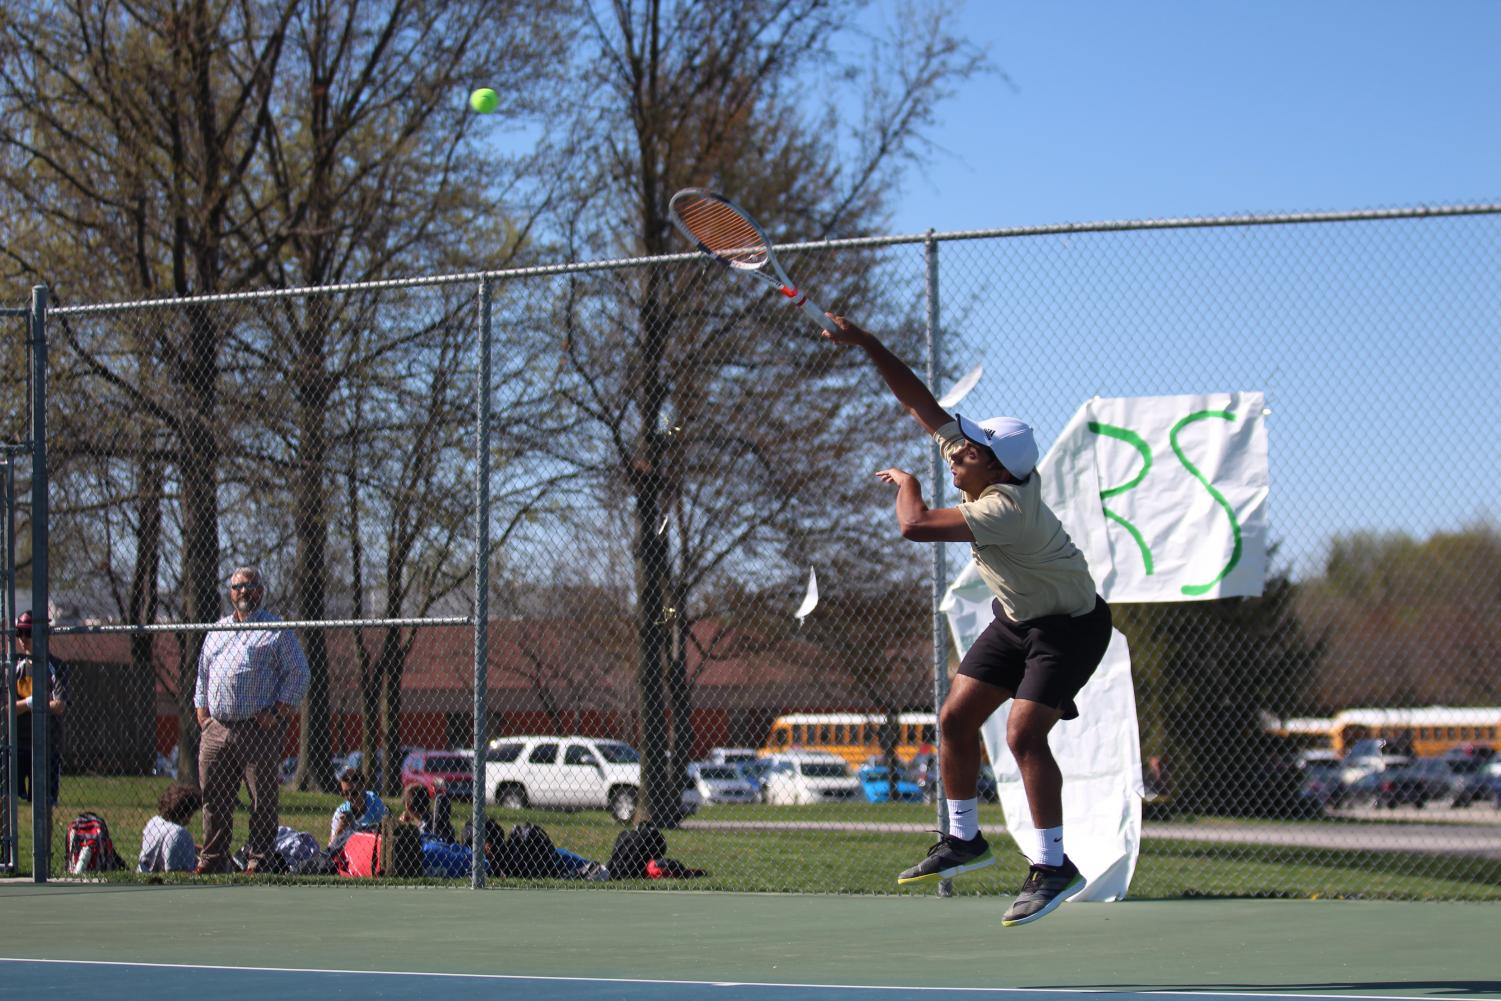 Sachin Milli unloads on the ball after his serve.